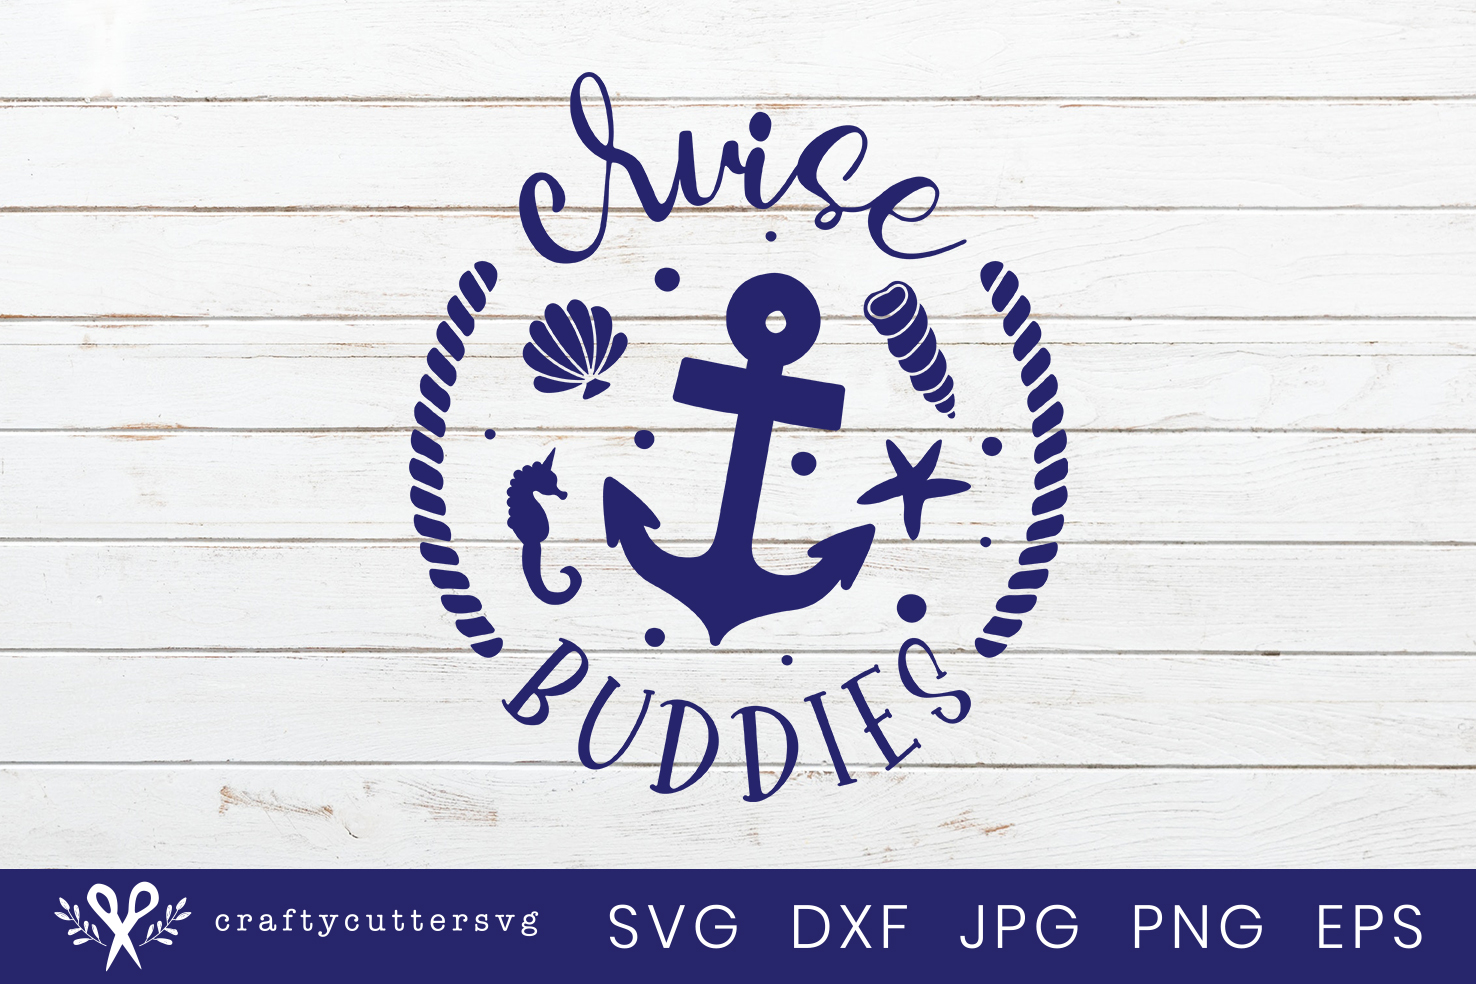 Cruise buddies Svg Cut File Cocktail Anchor Shell Clipart example image 2